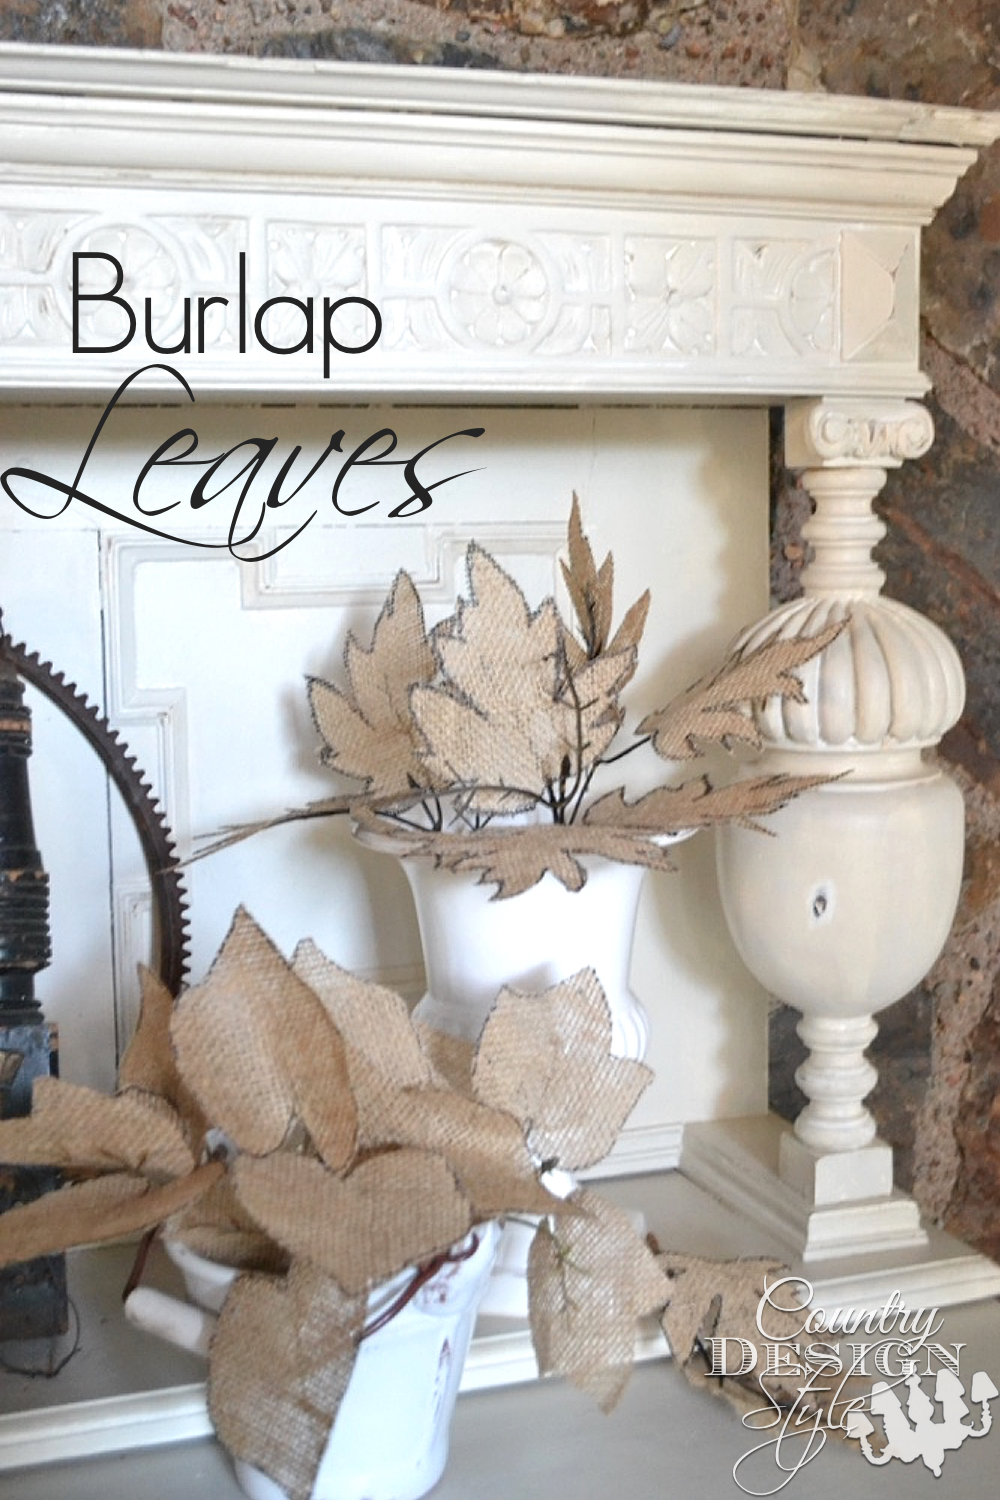 Simple tutorial on making burlap leaves from dollar store fall leaves. Add rustic fall to your living room. Country Design Style www.countrydesignstyle.com